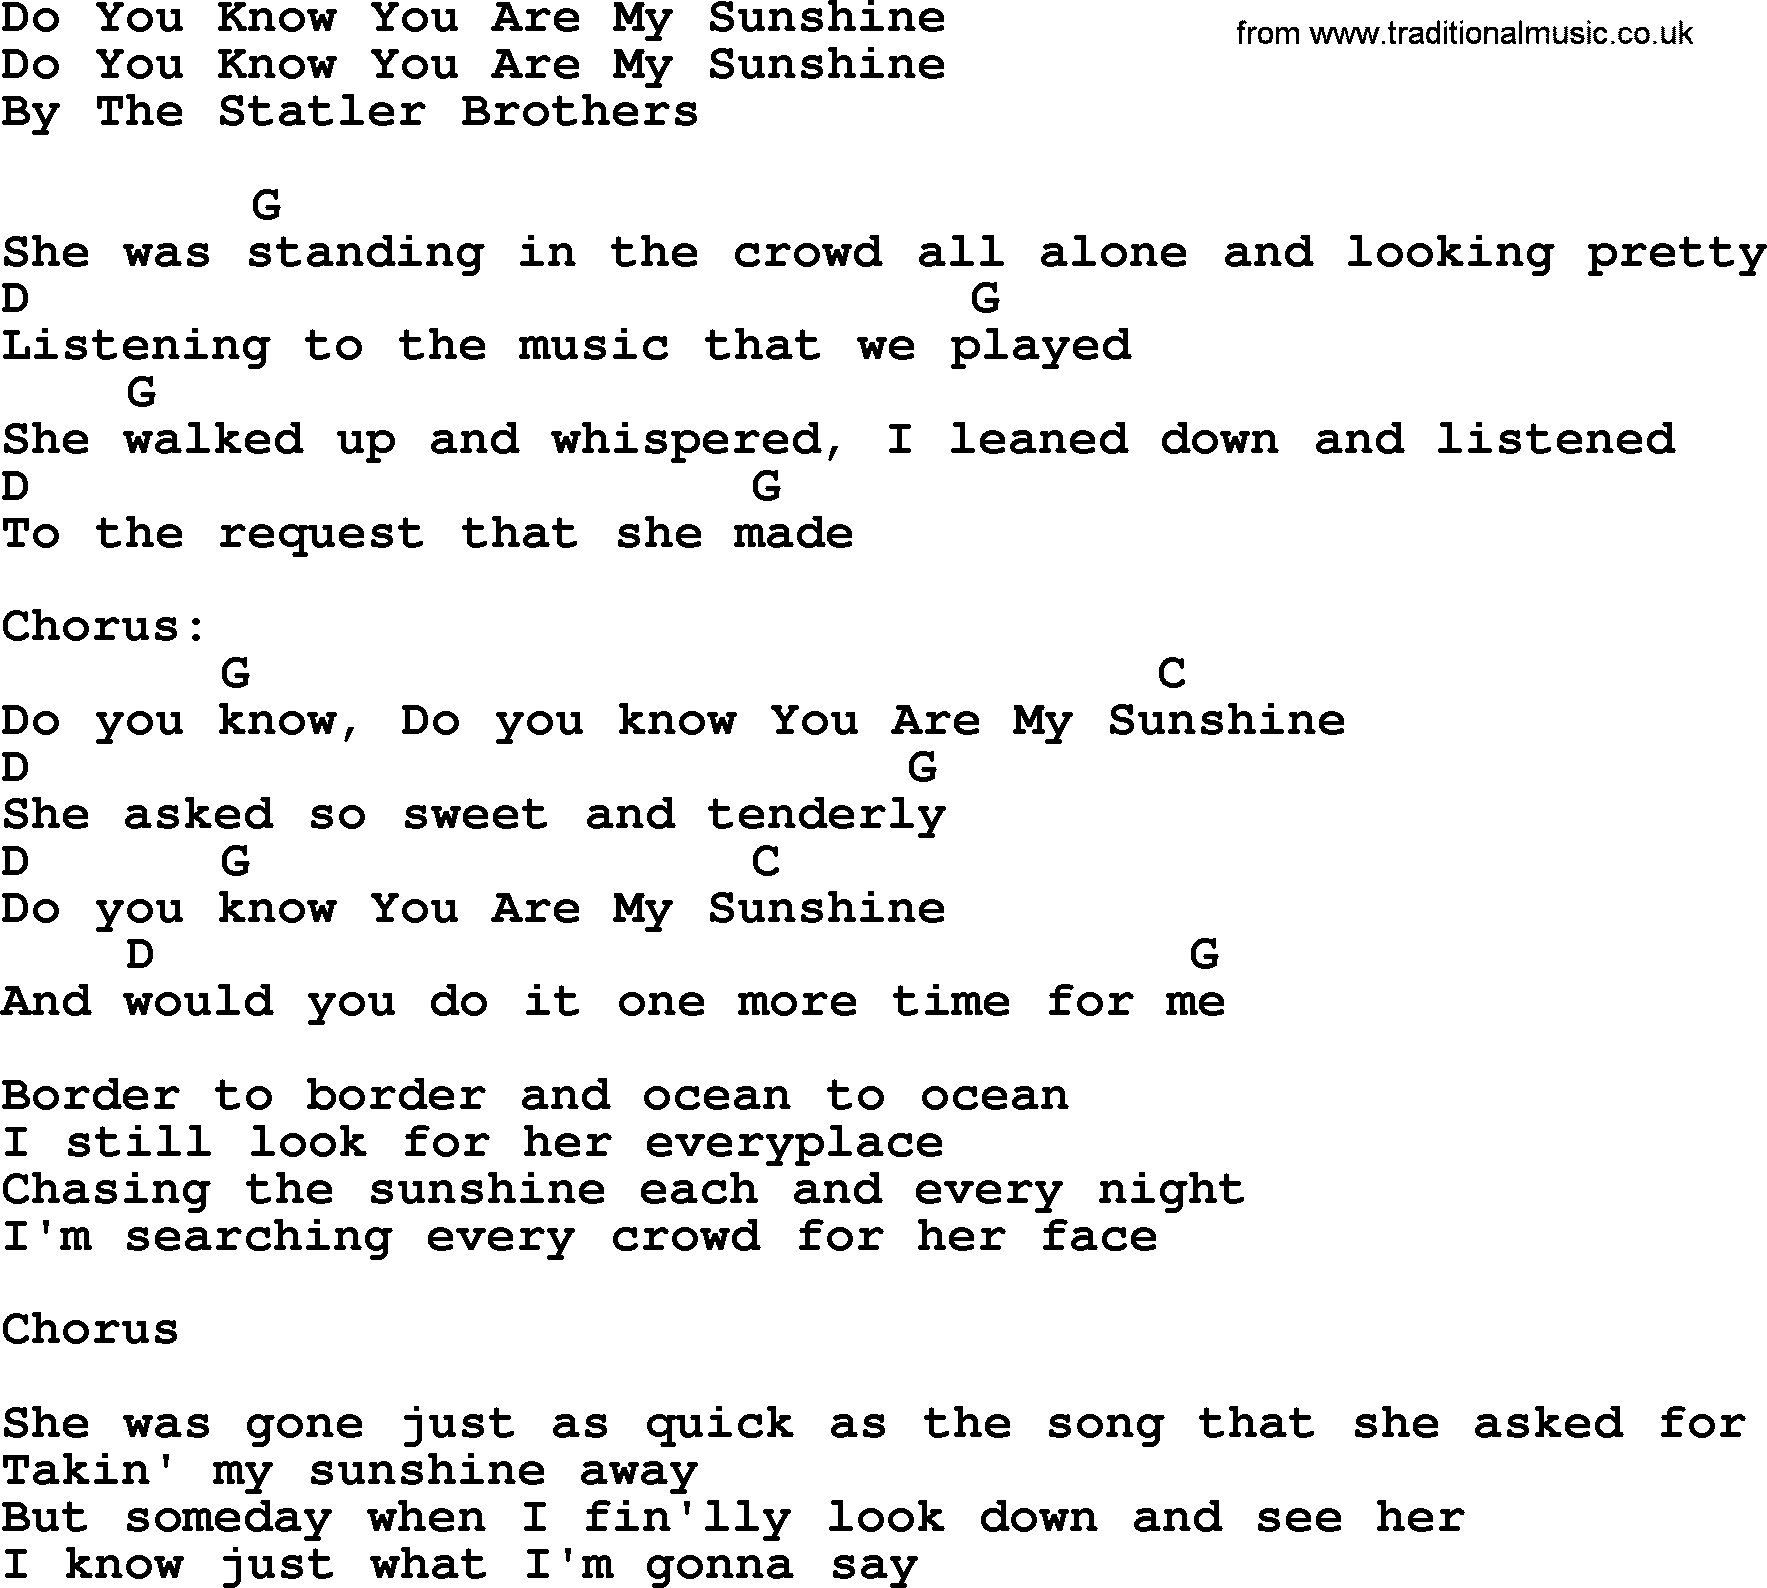 Do You Know You Are My Sunshine - Bluegrass lyrics with chords